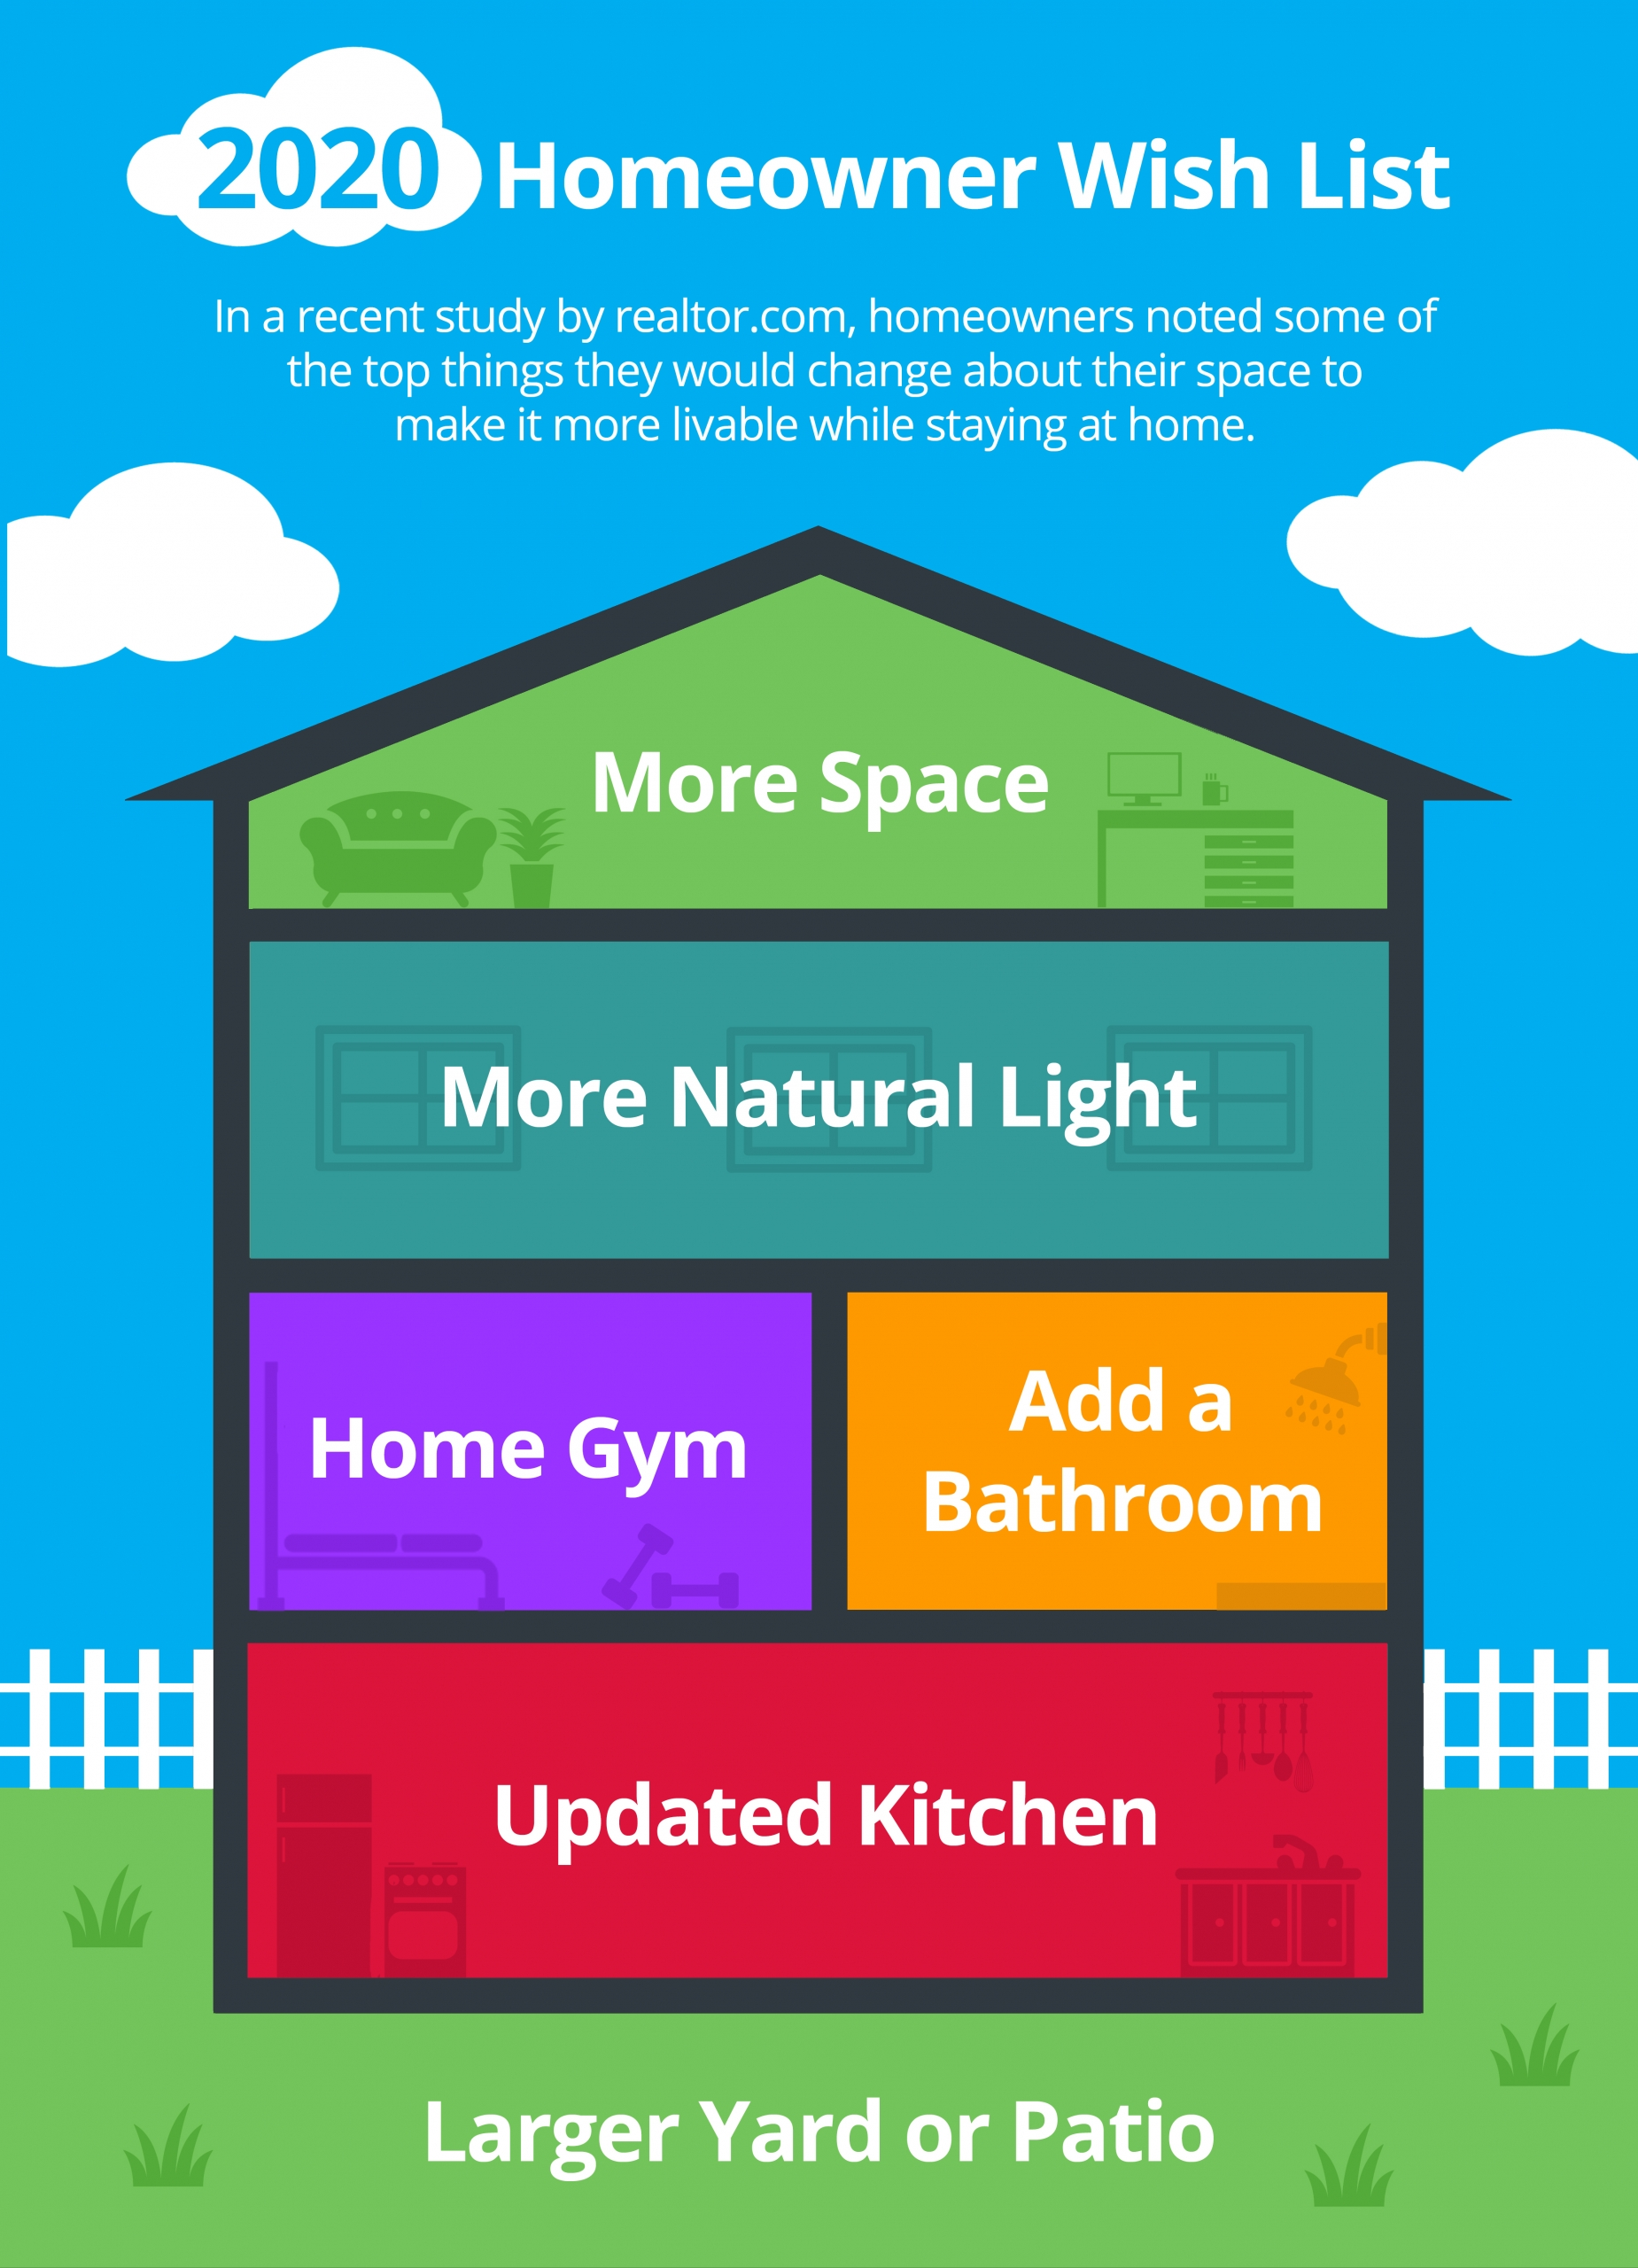 2020 Homeowner Wish List [INFOGRAPHIC]   Simplifying The Market